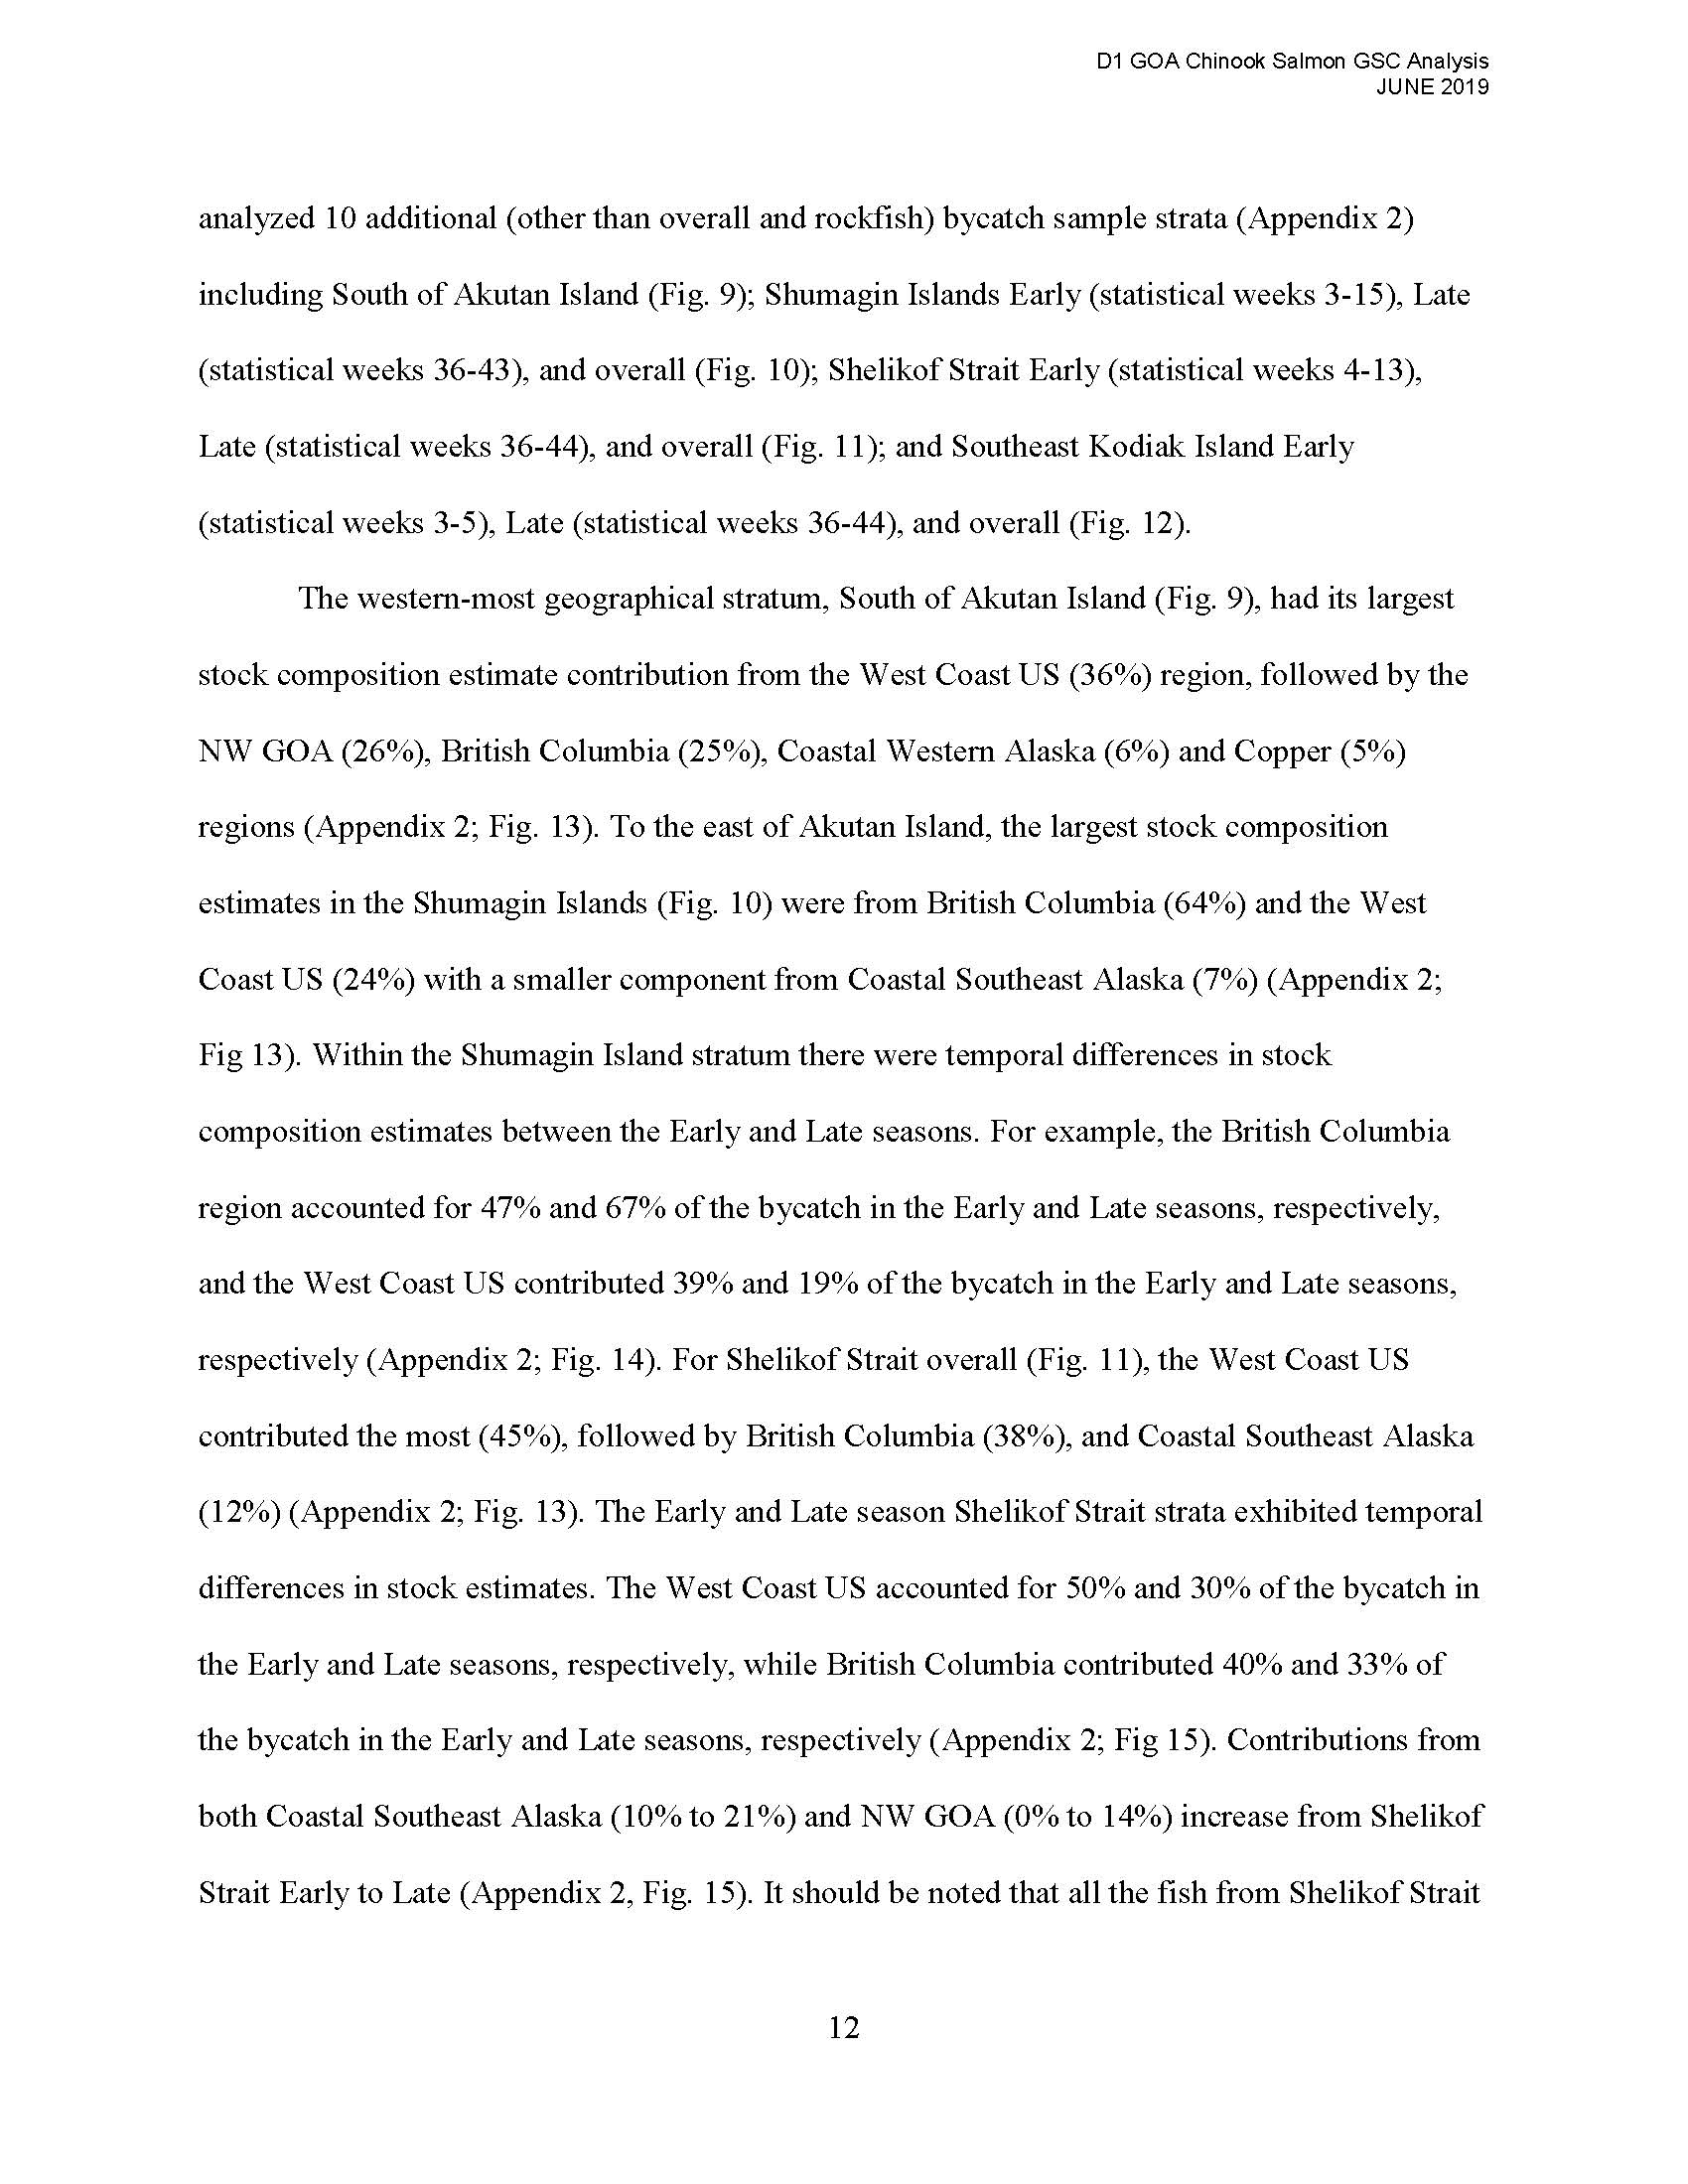 DownloadFile  GOA Chinook Salmon Stock Composition Report_Page_20.jpg